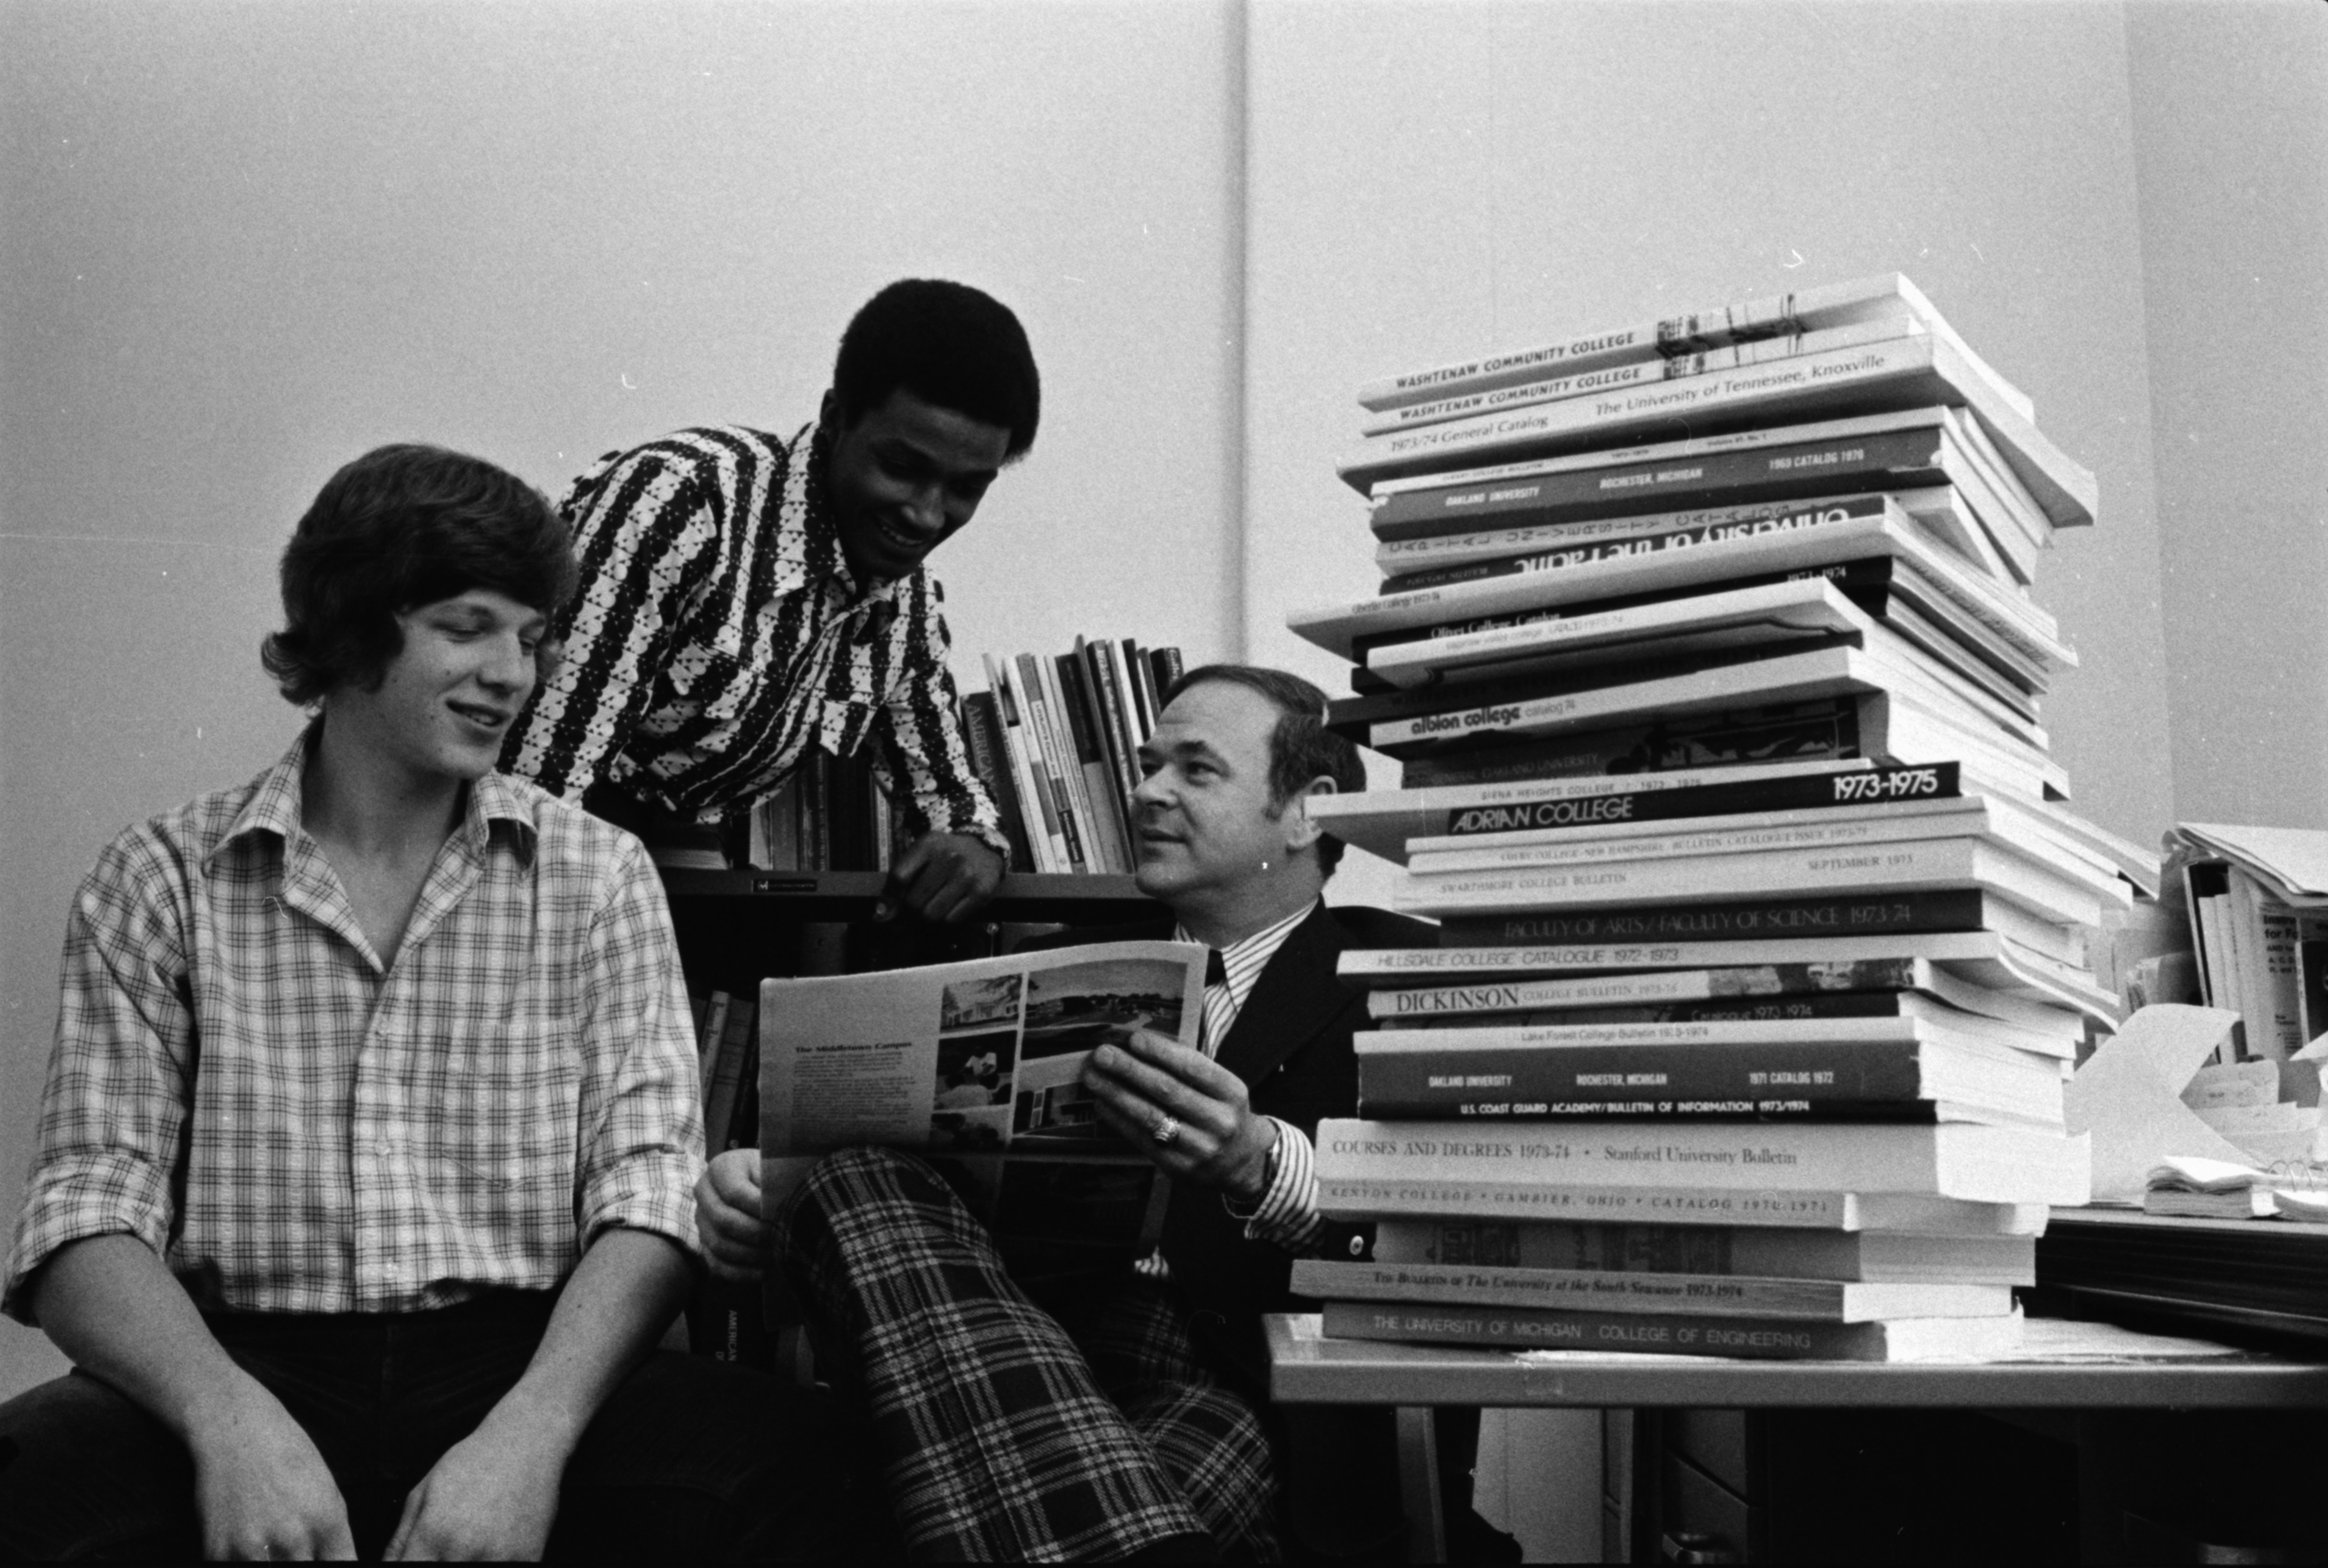 Huron High School Counselor Helps Students Select Colleges, February 1974 image